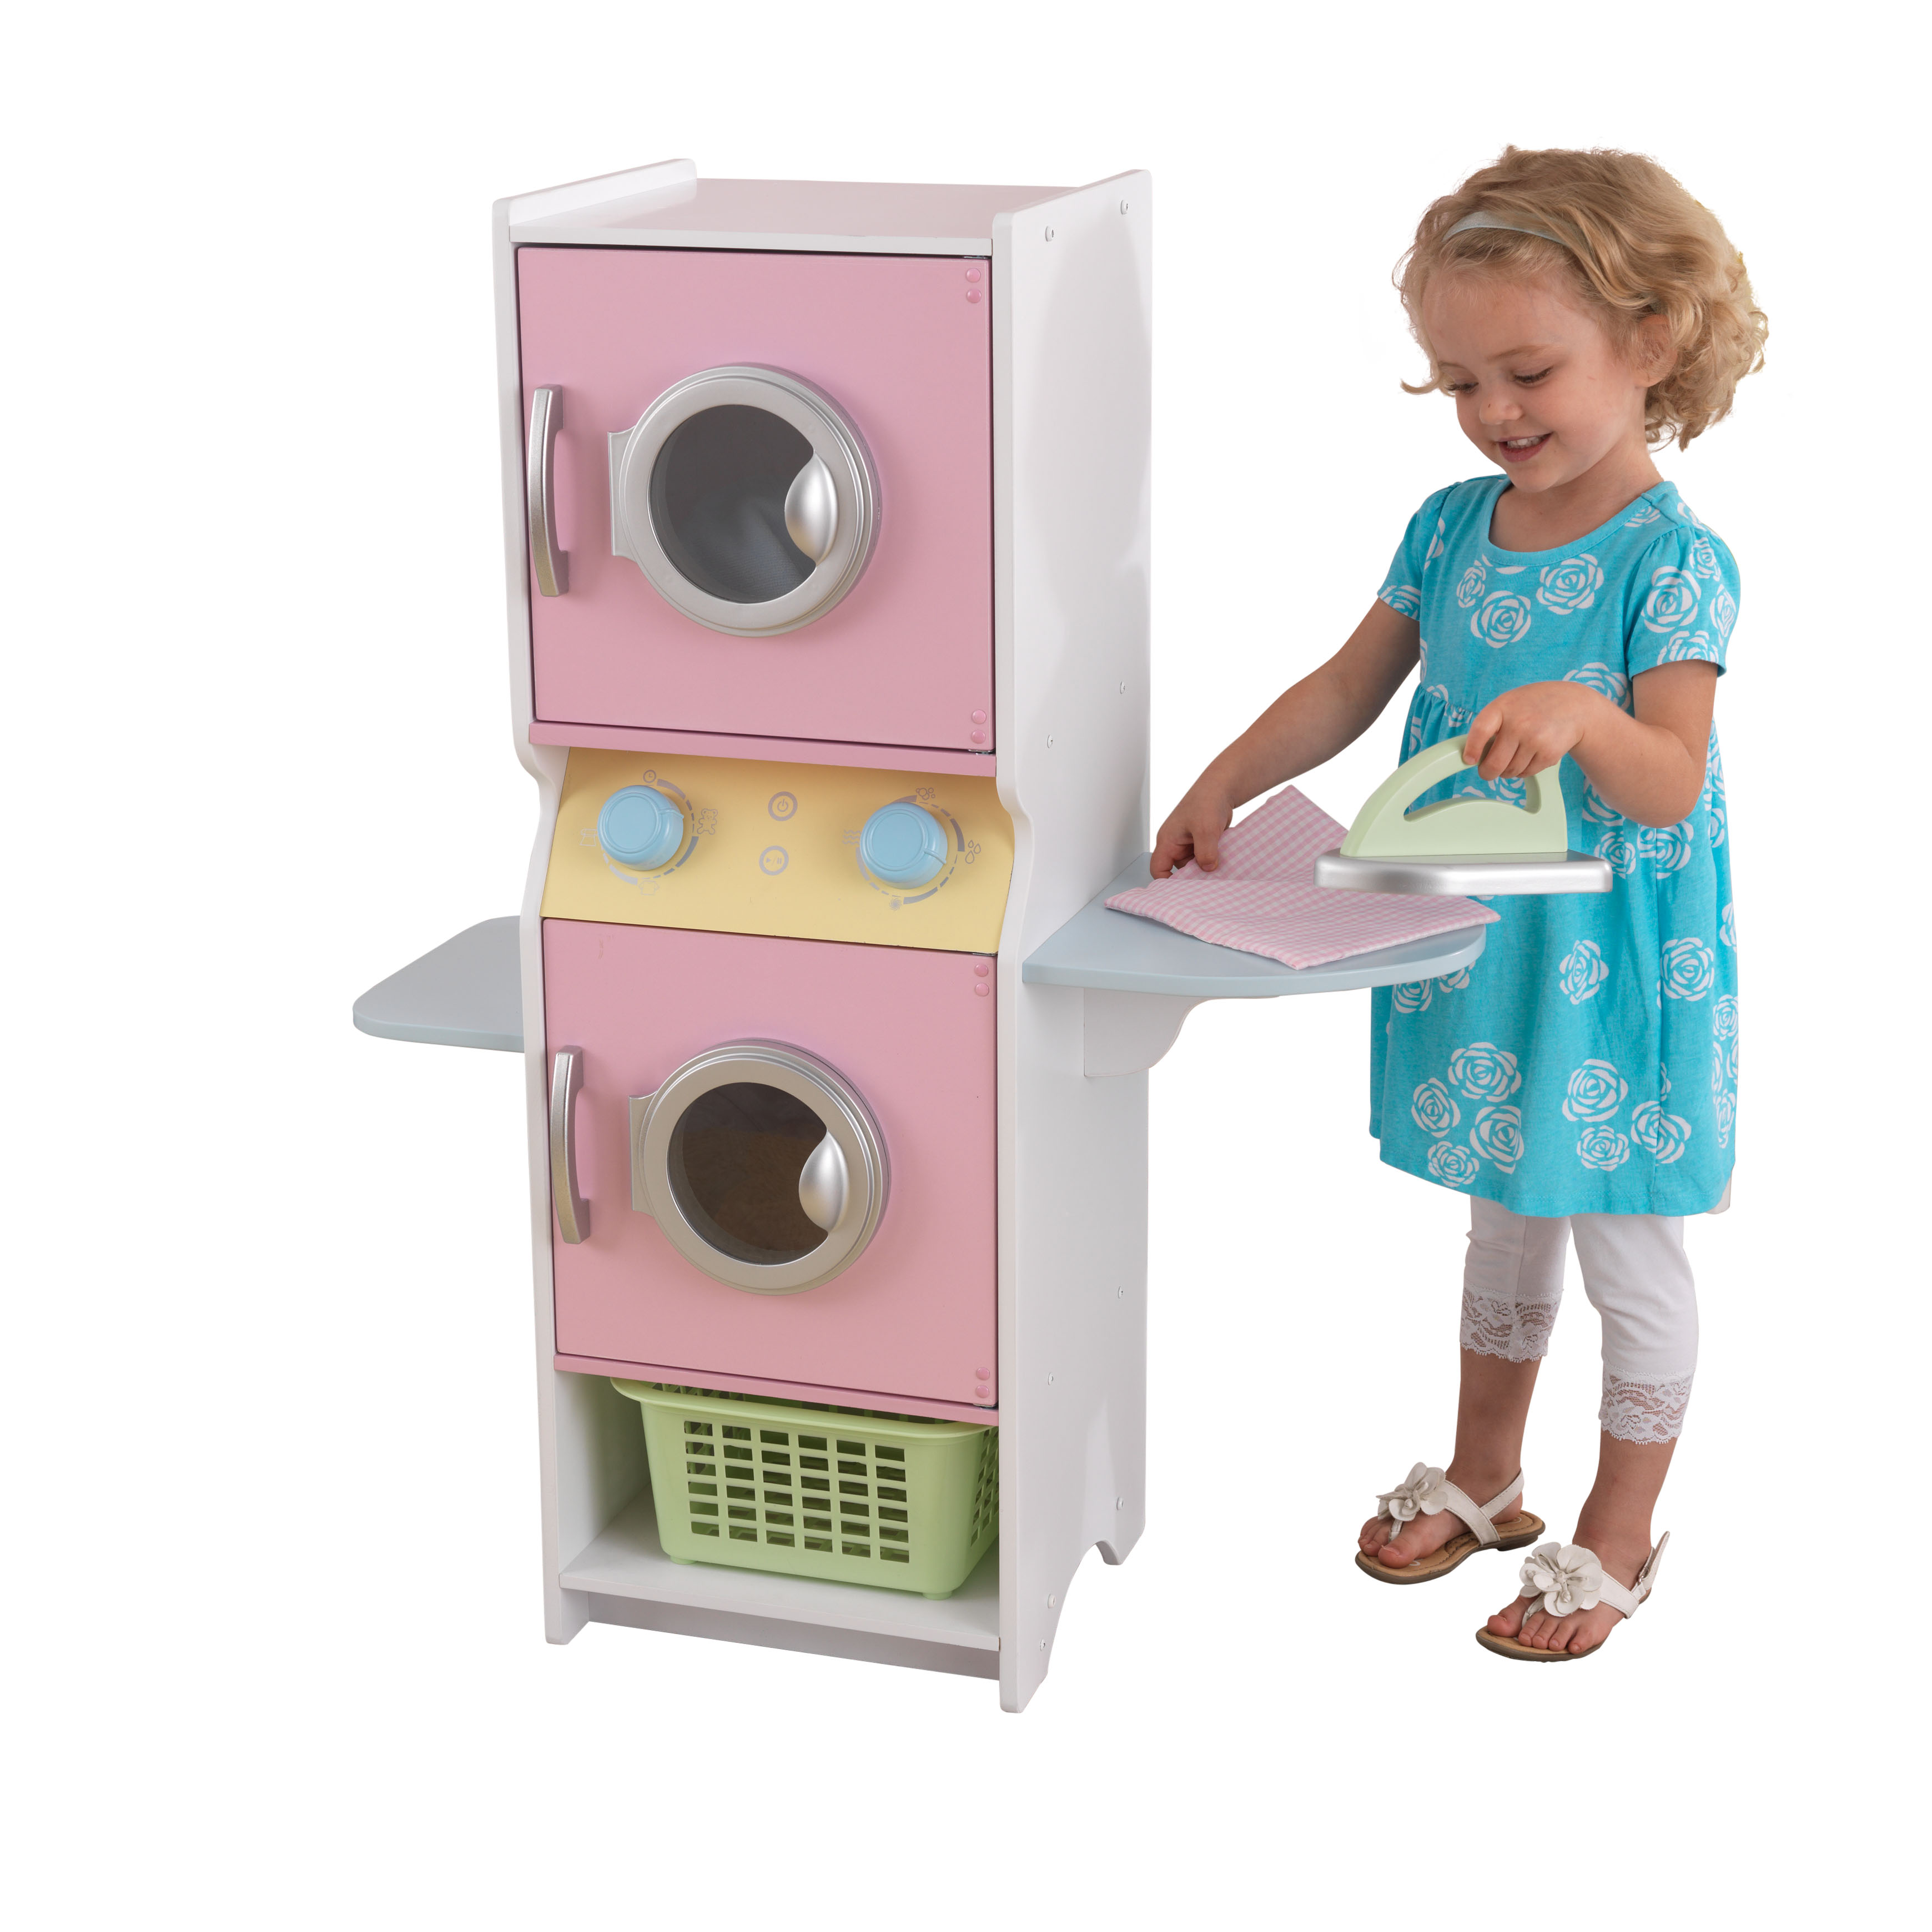 KidKraft Laundry Play Set - Pastel